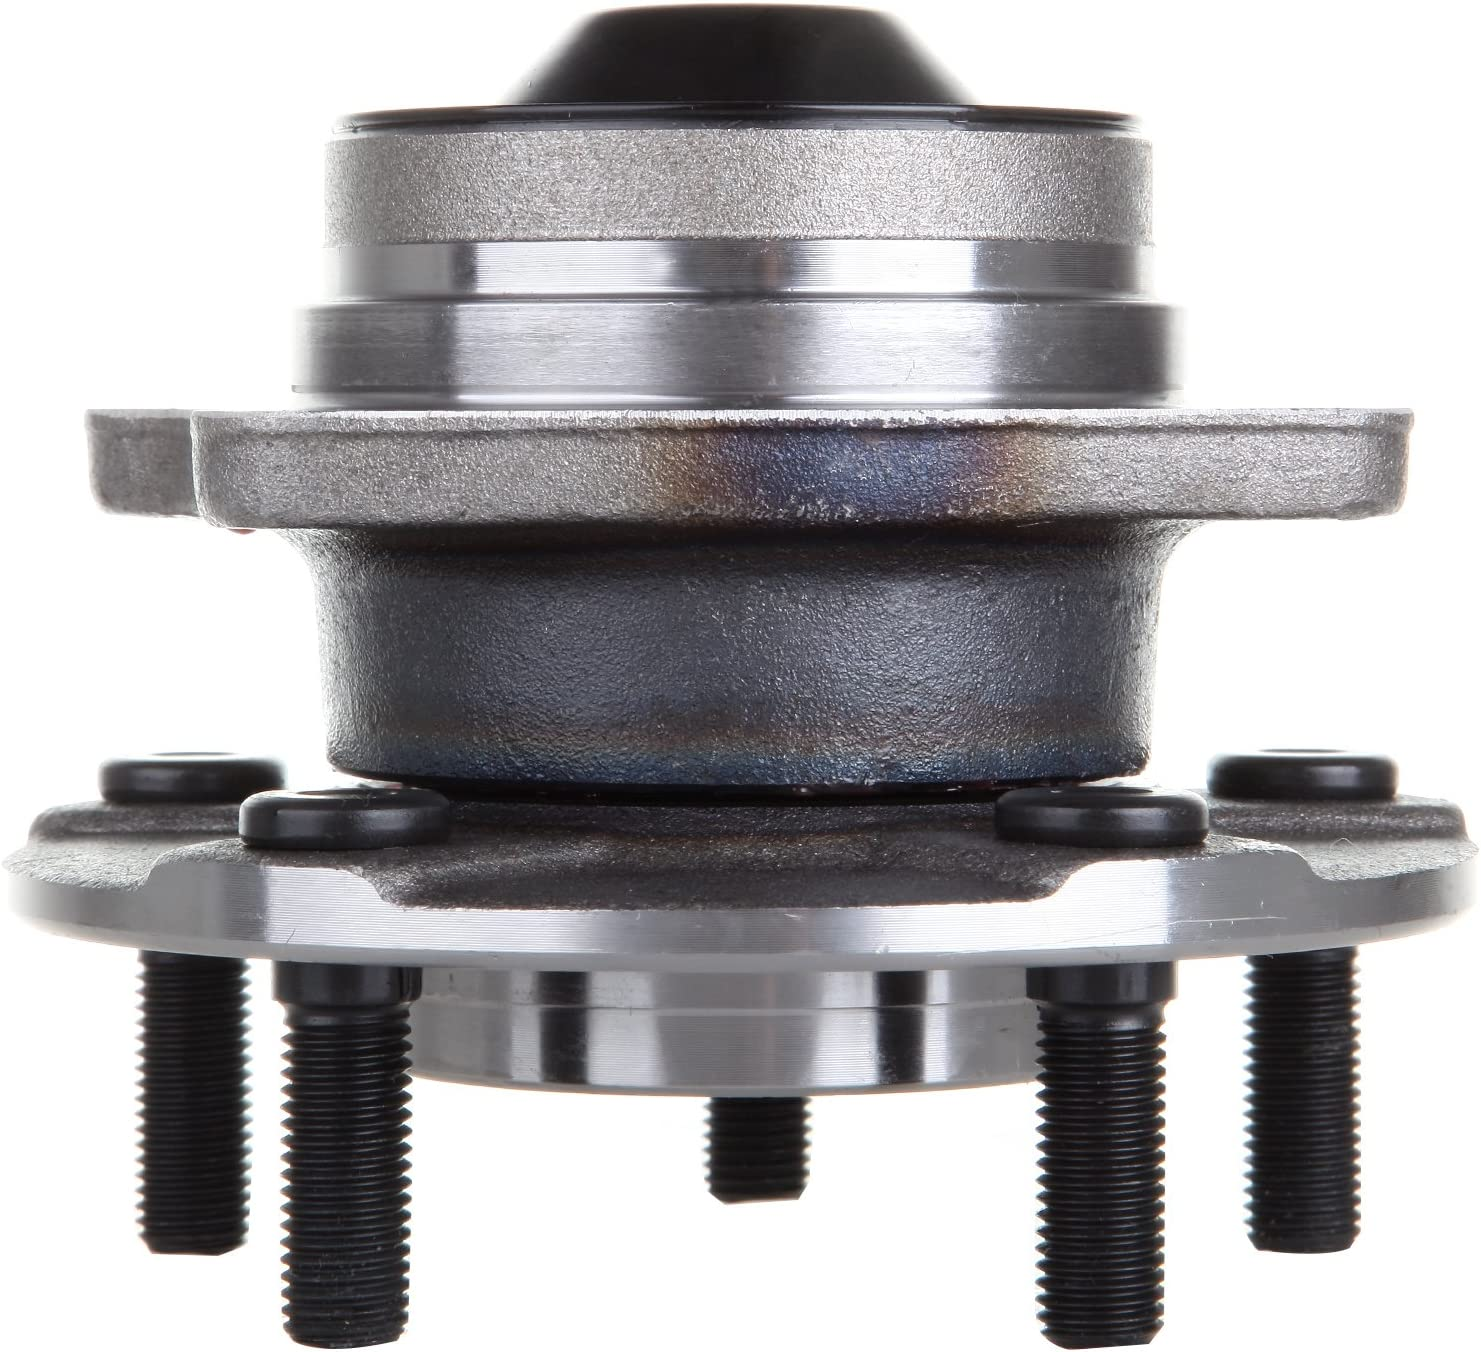 ECCPP Replacement For Wheel Bearing Hub Outlet ☆ Free Popularity Shipping Town Assembly and